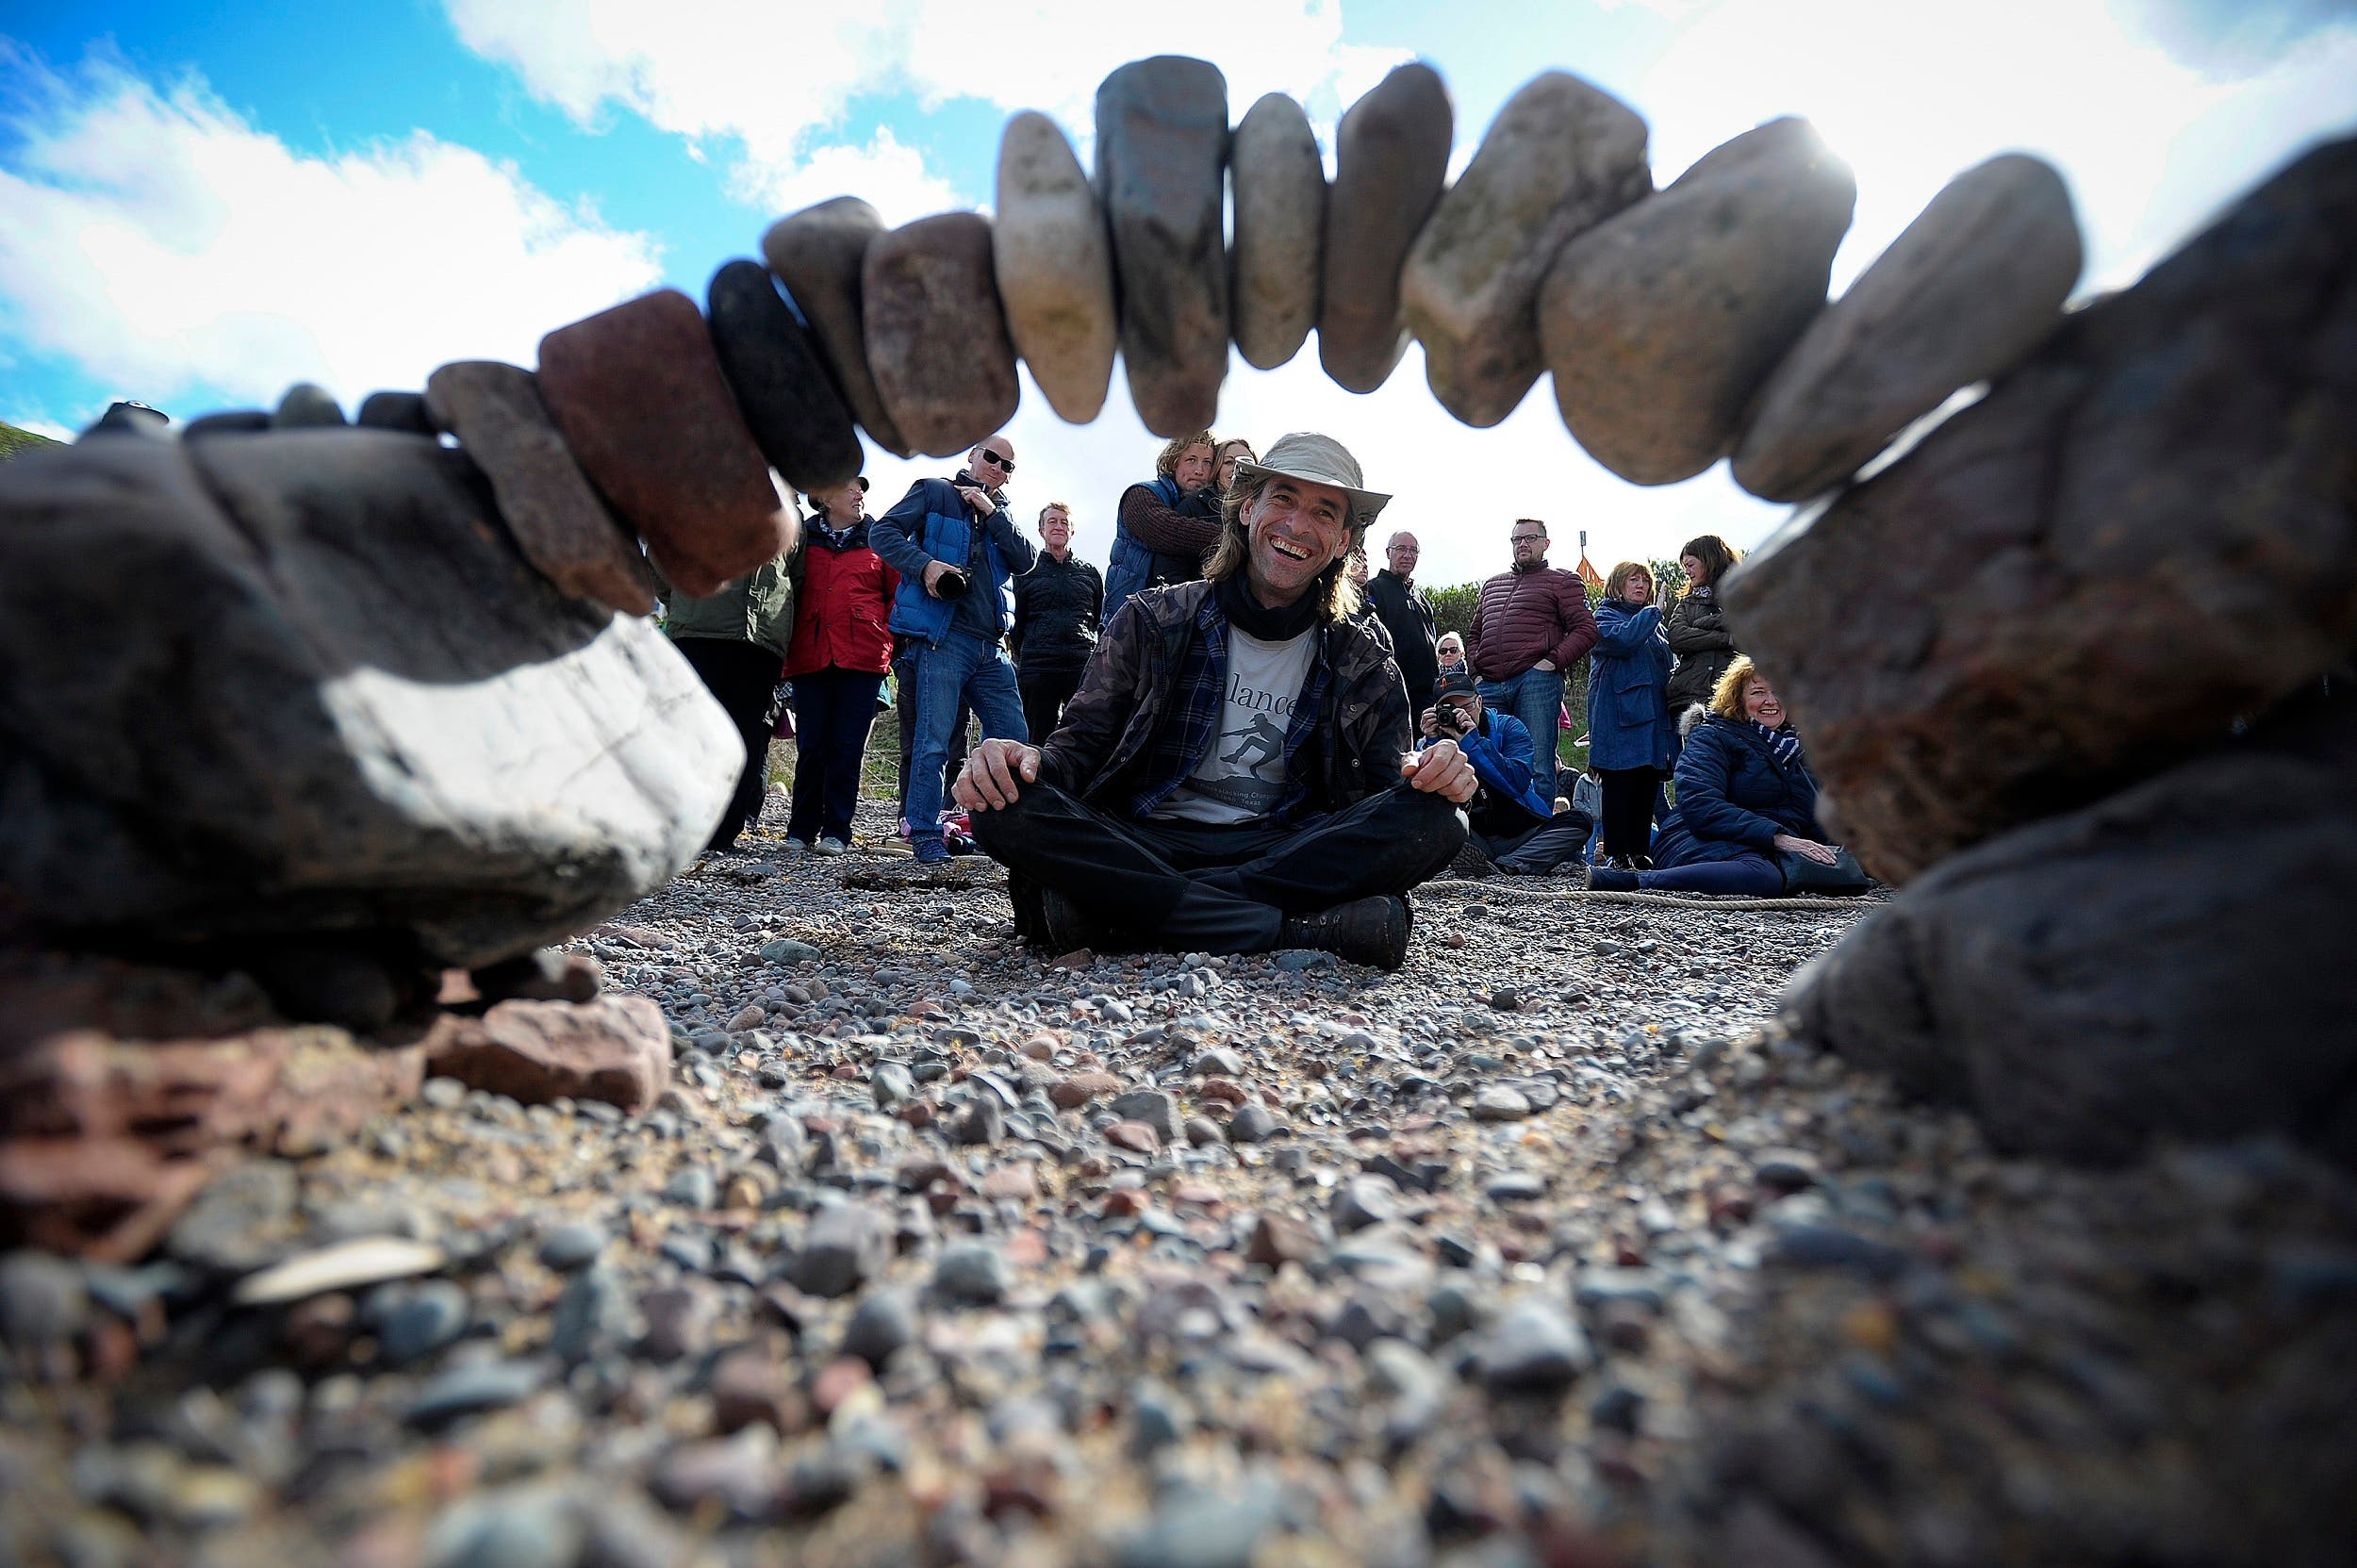 Overall winner, Pedro Duran from Spain, competes in the European Stone Stacking Championships 2018 in Dunbar, Scotland, on April 22, 2018. (AFP)